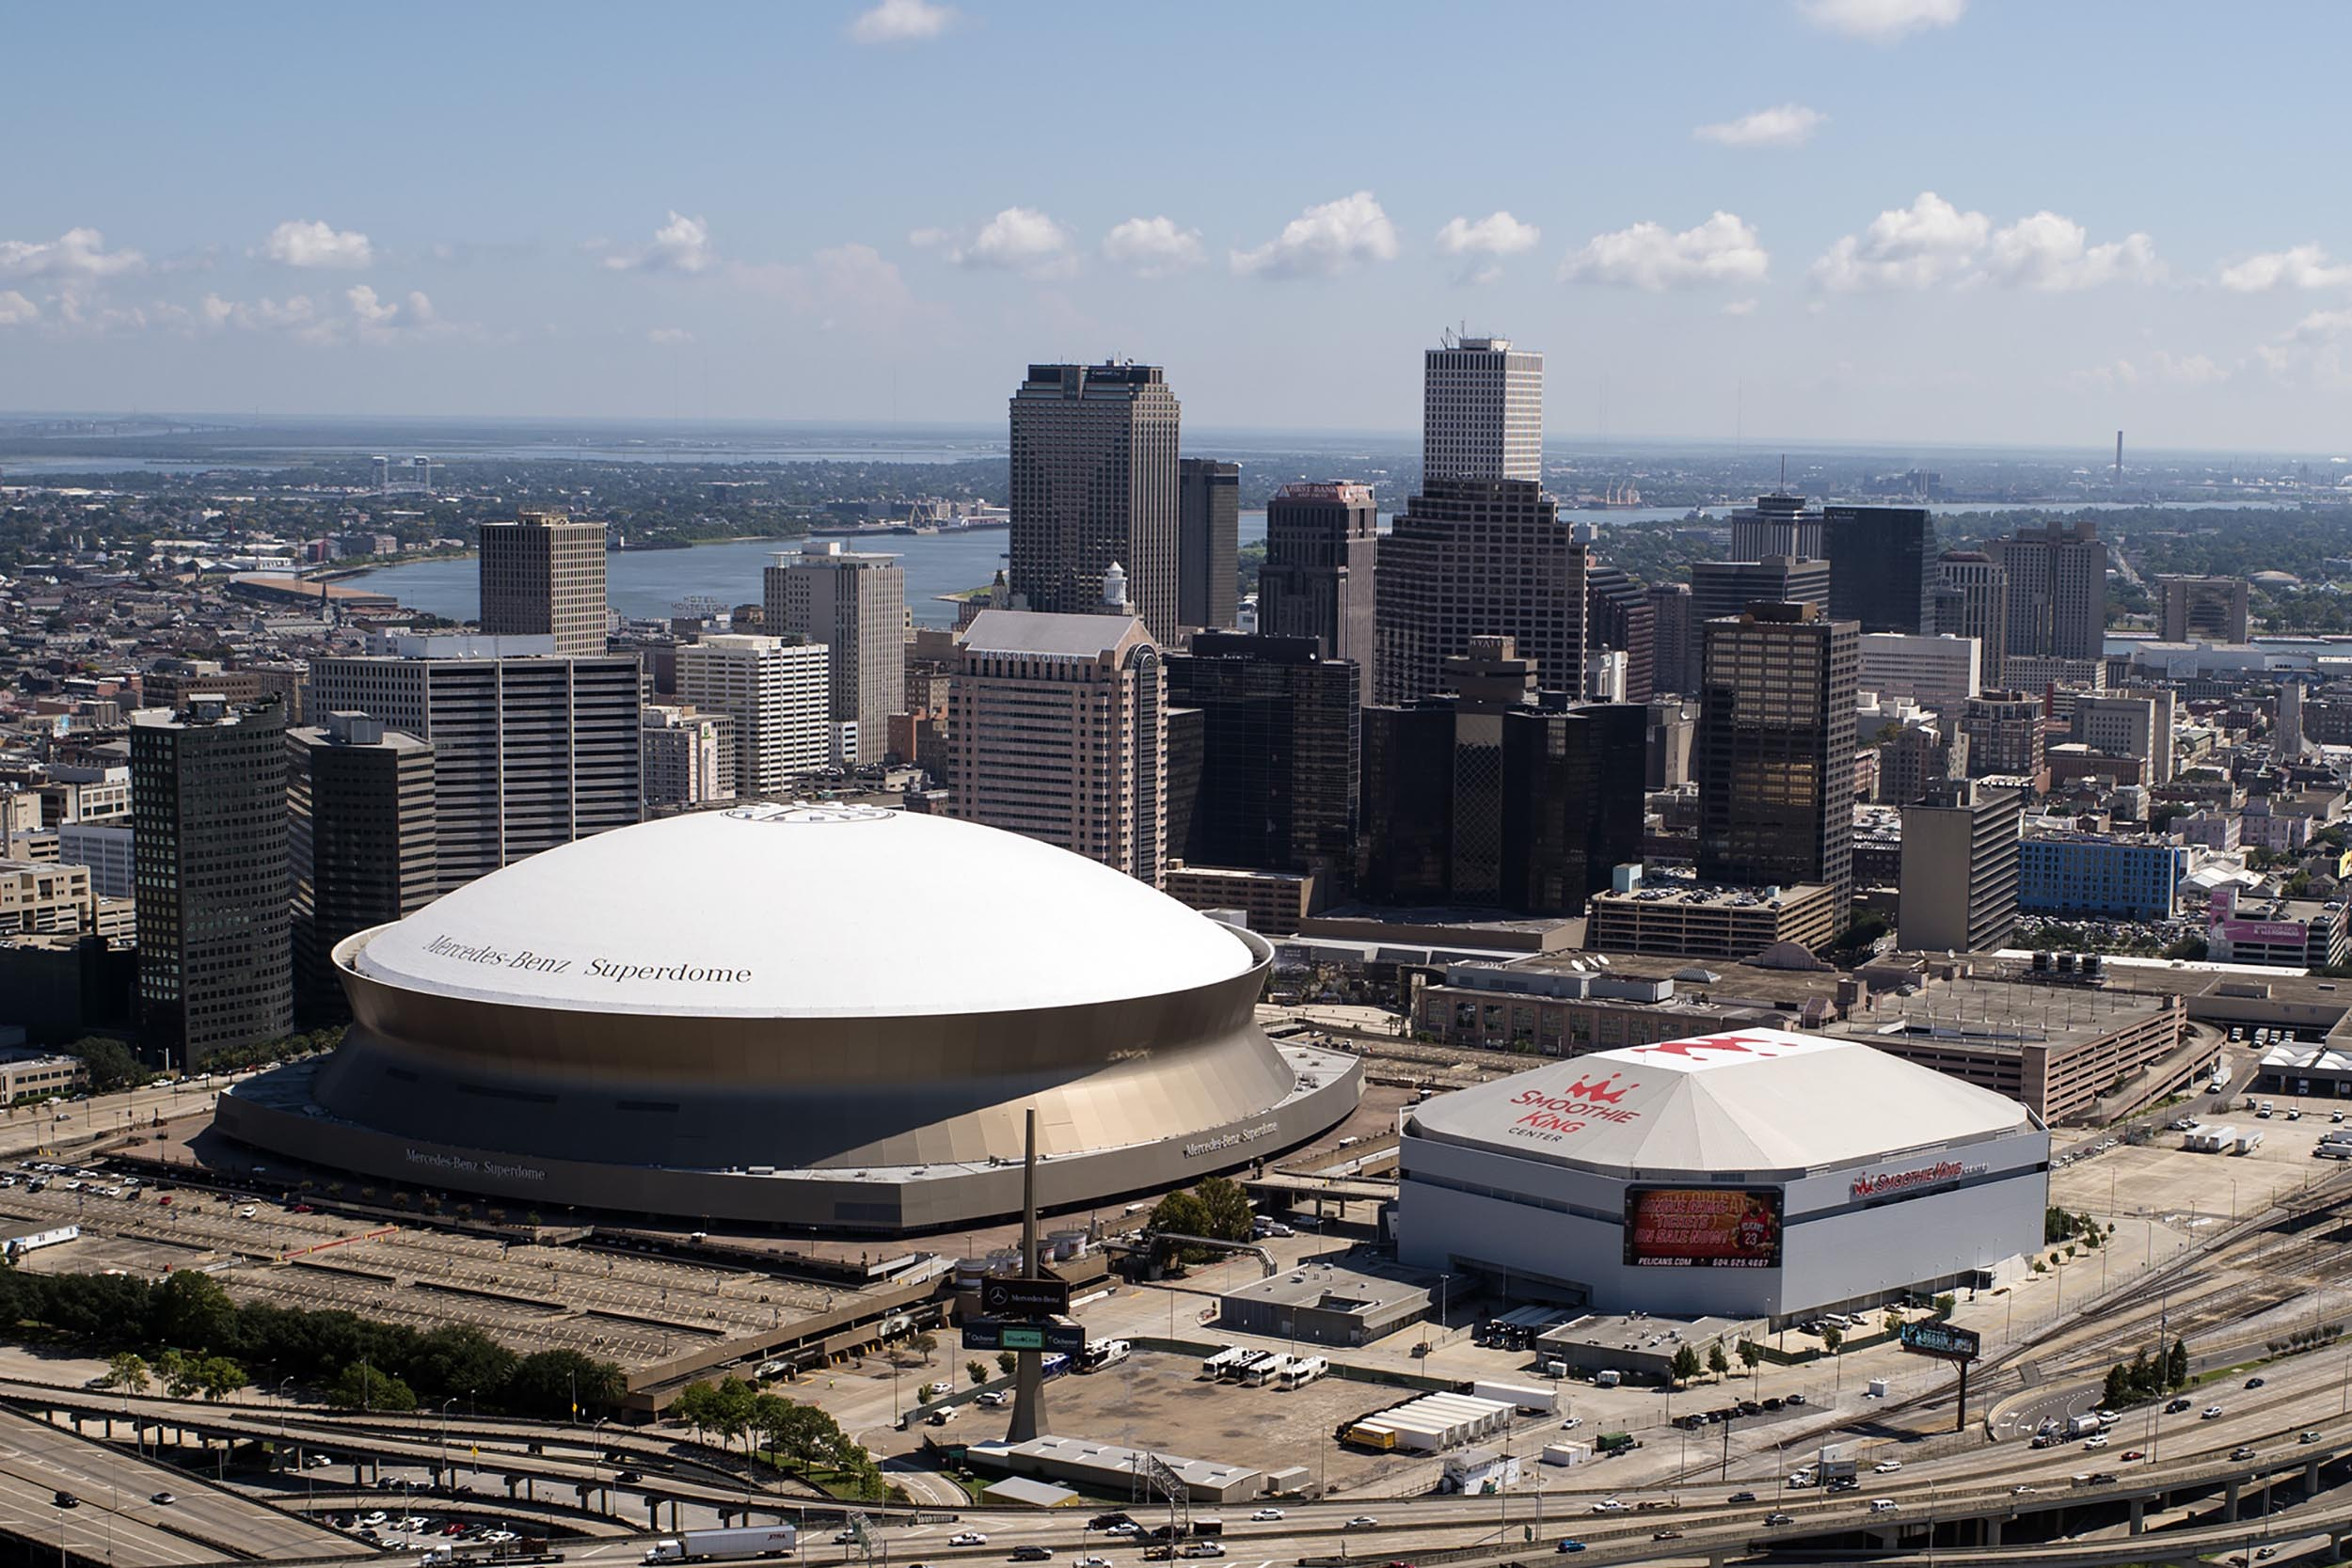 The Mercedes Benz Superdome, Smoothie King Center, and downtown skyline